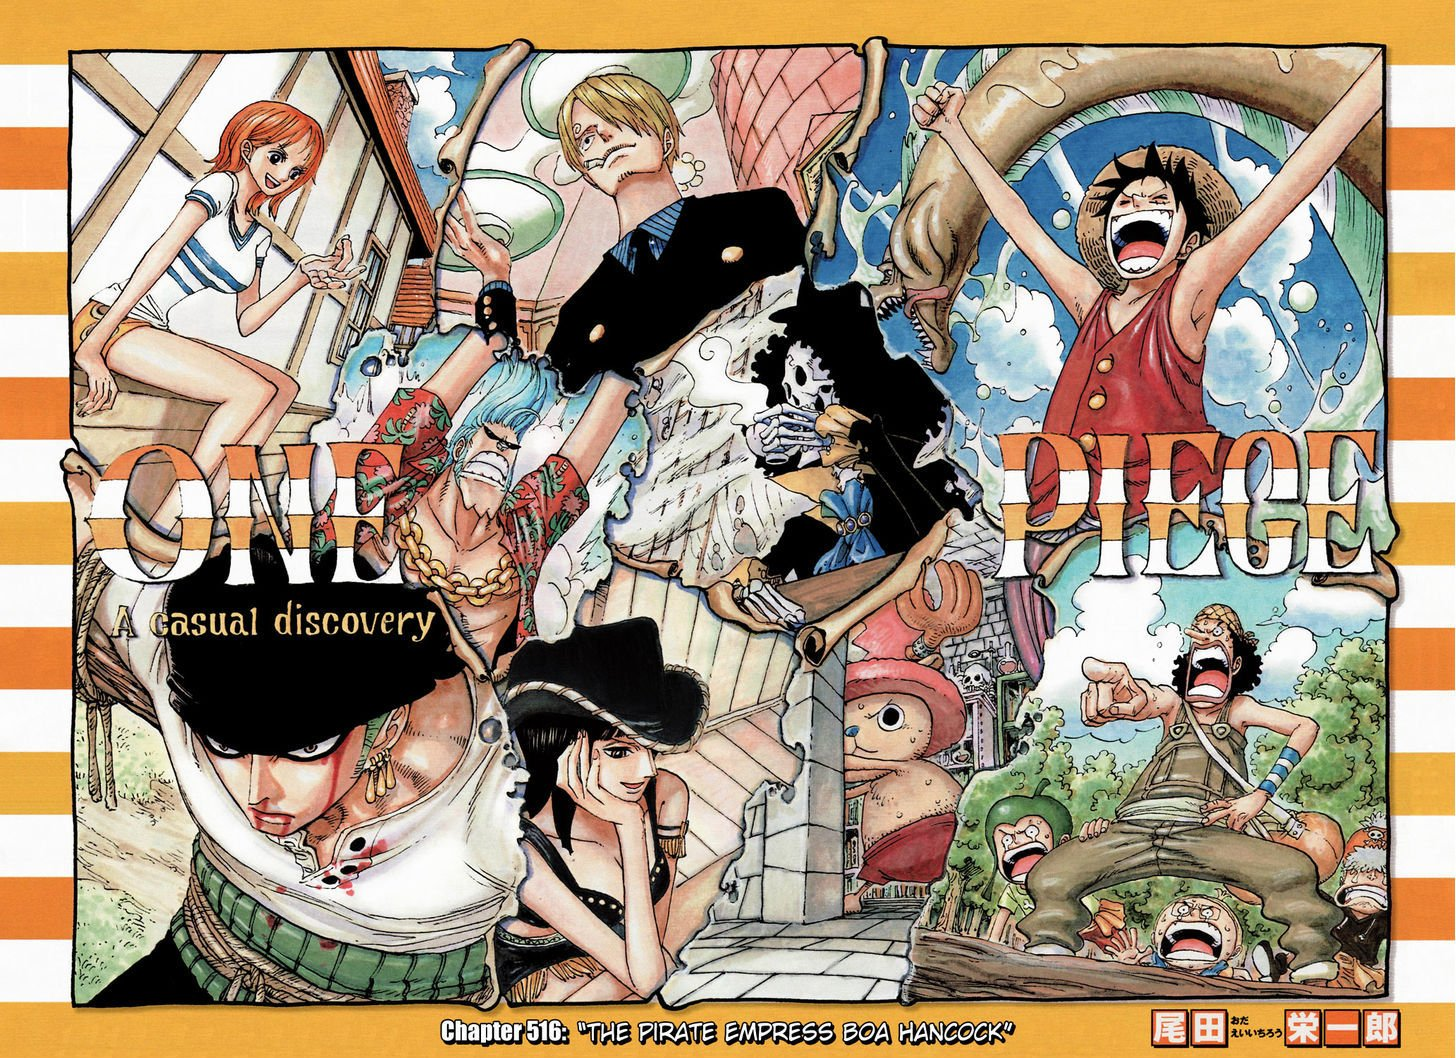 https://im.nineanime.com/comics/pic9/32/96/2864/OnePiece5160788.jpg Page 1